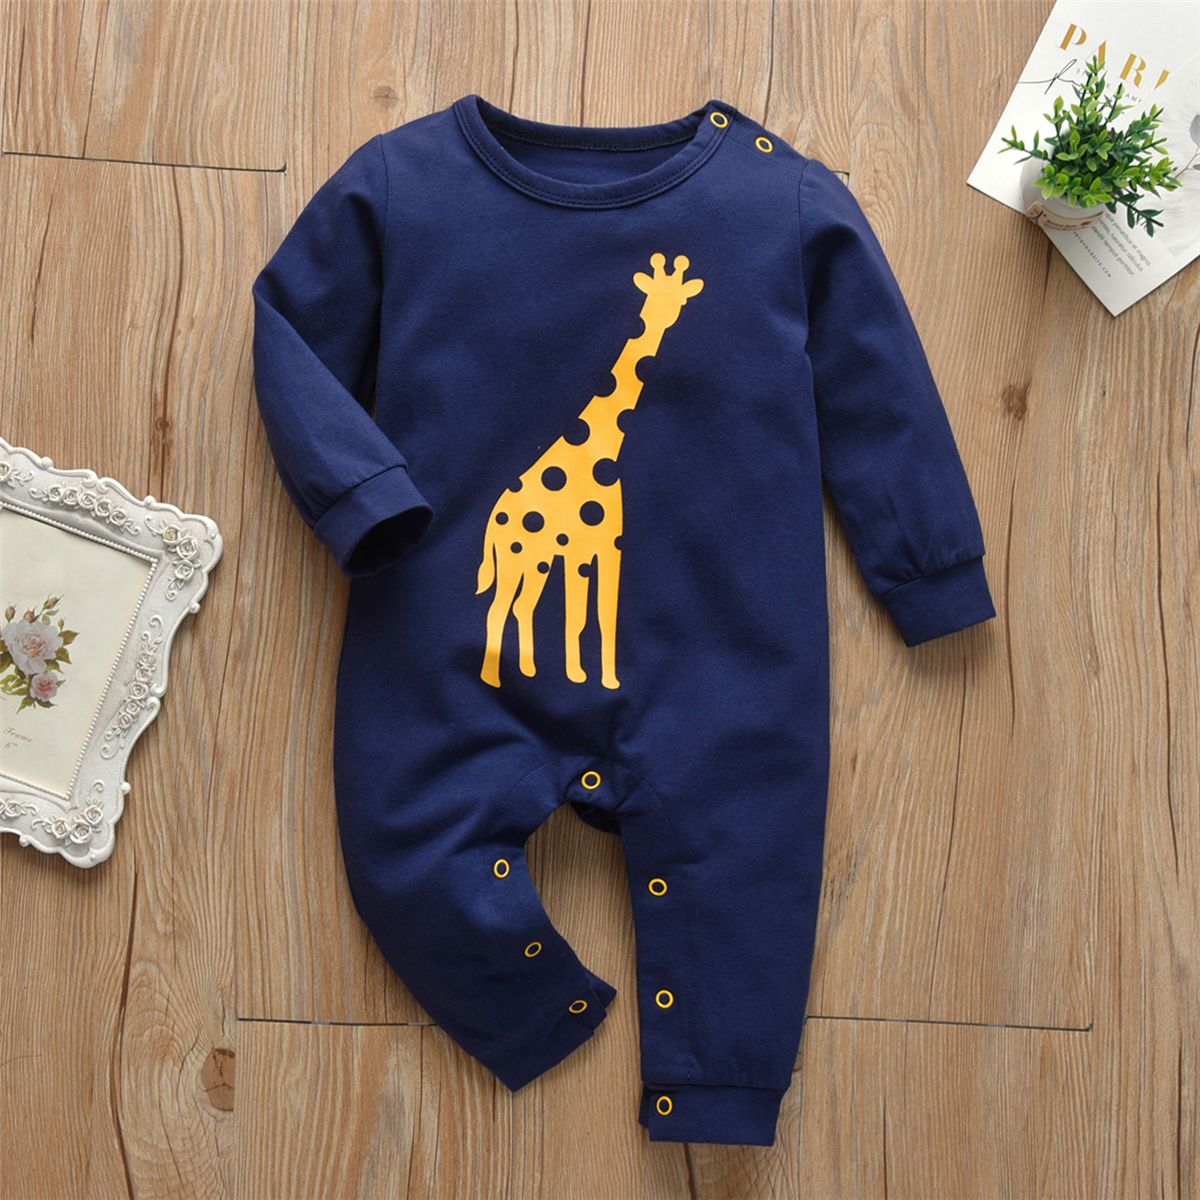 Newborn Baby Boys Girls Romper Pajamas Cotton Long Sleeve Giraffe Print Jumpsuit Infant Clothing Autumn Toddler Clothes Outfits | Happy Baby Mama